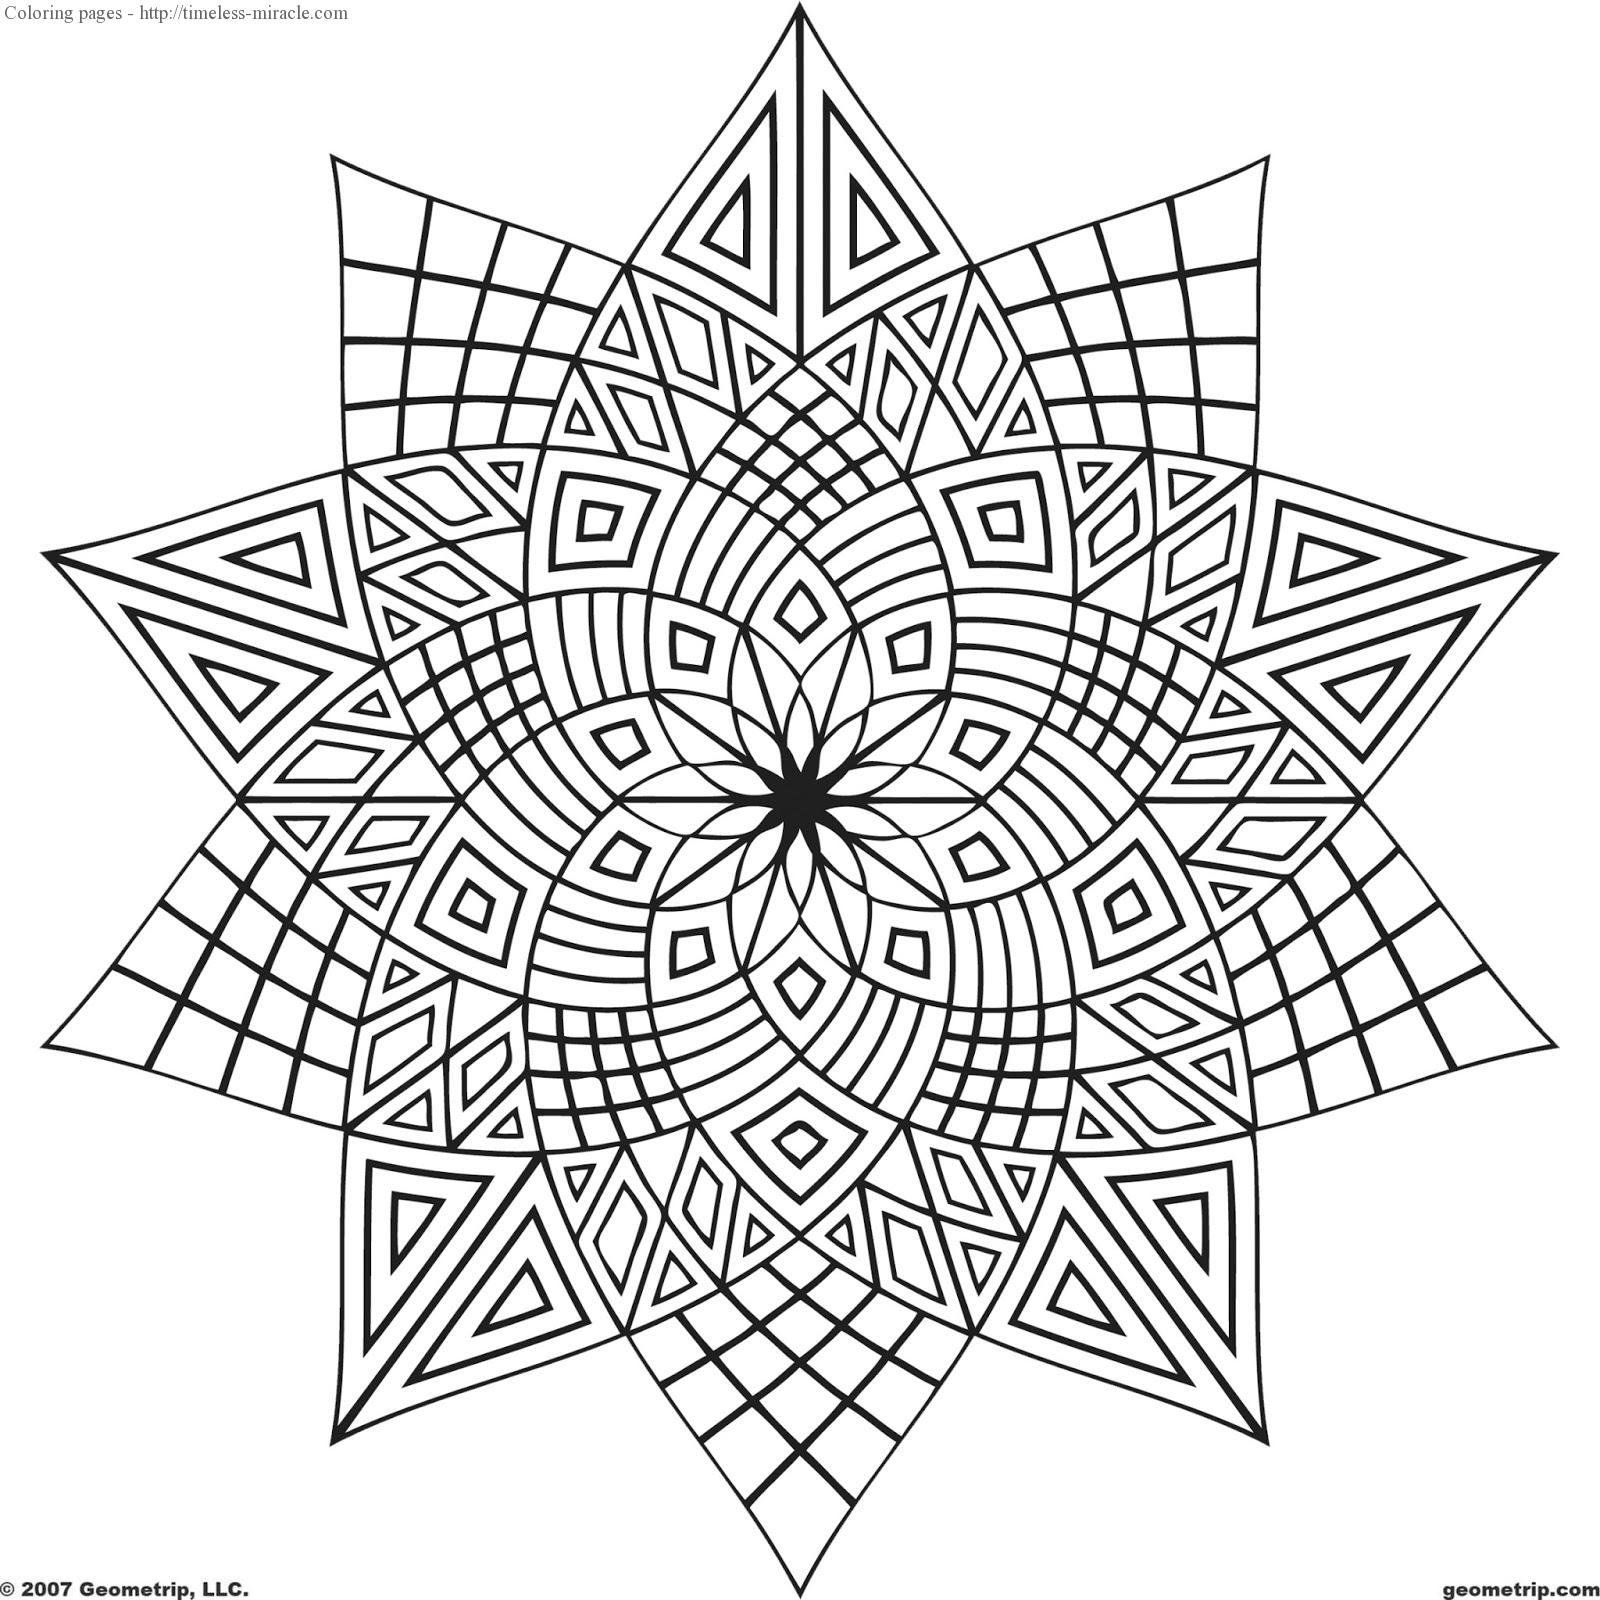 coloring printouts for girls coloring pages for girls 10 and up timeless miraclecom girls coloring printouts for